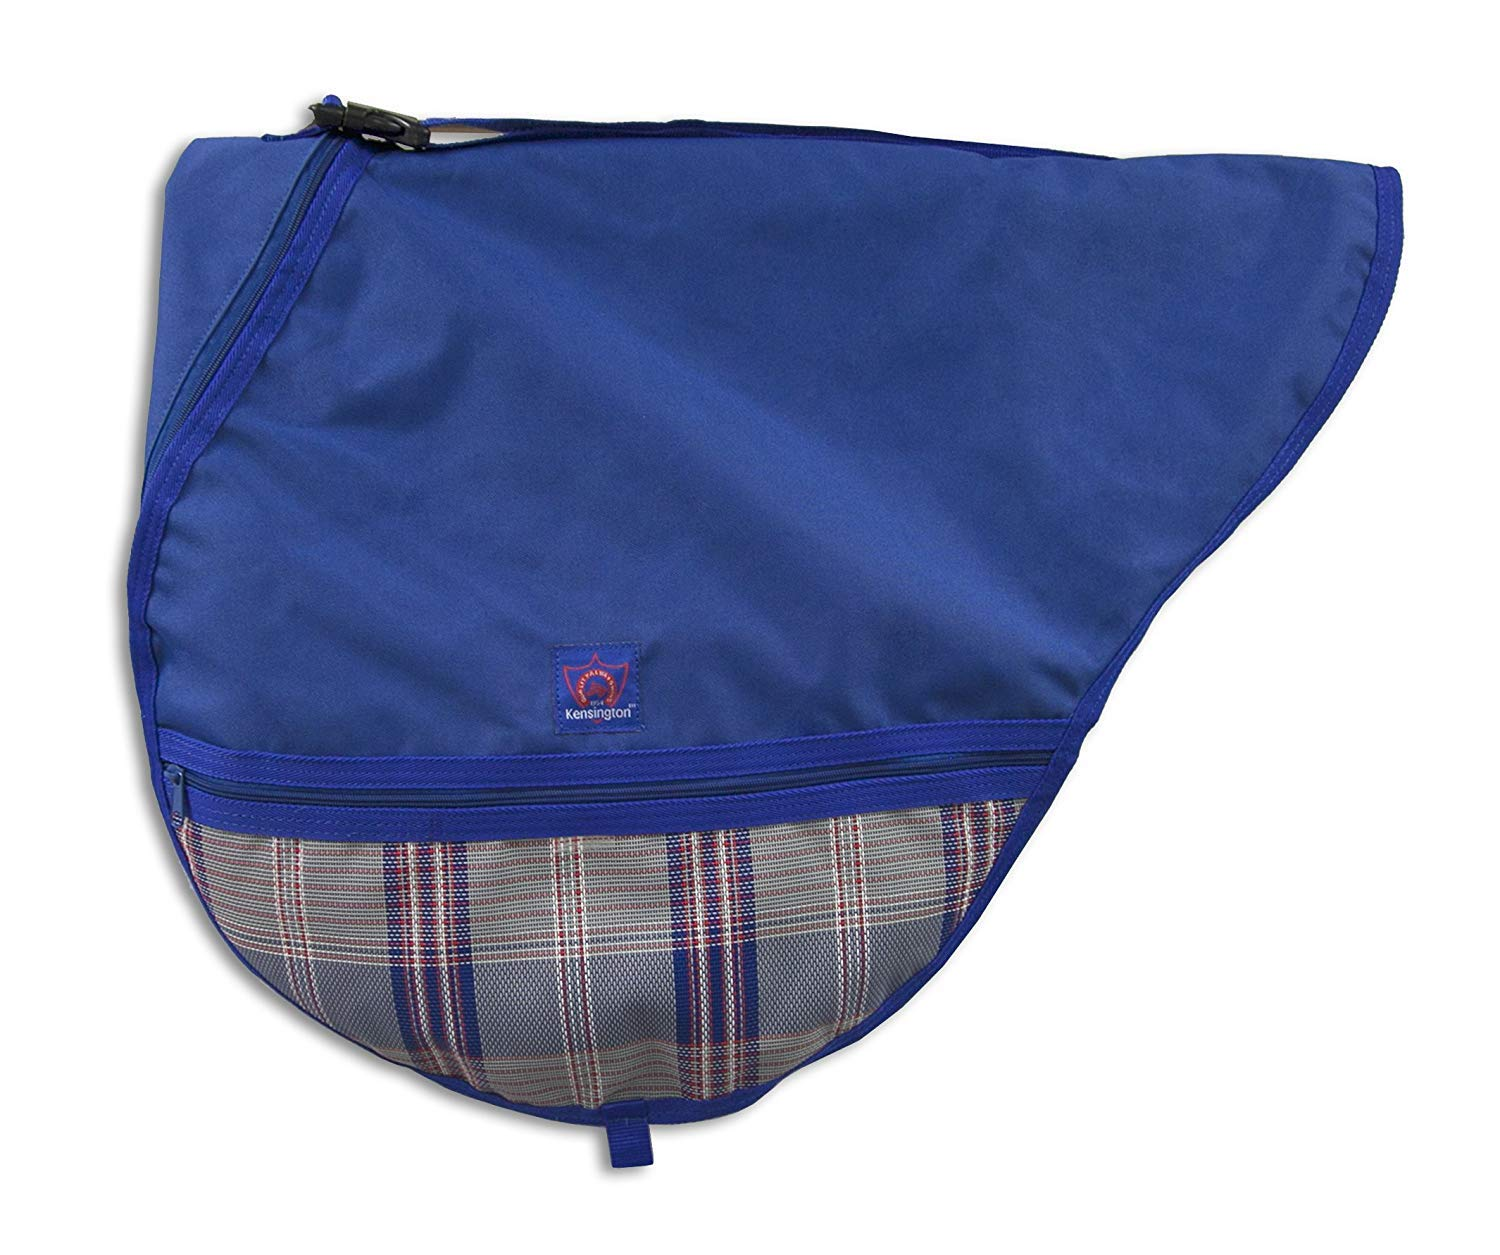 Kensington All Purpose Saddle Cover, Navy/Patriot Plaid, One Size by Kensington Protective Products